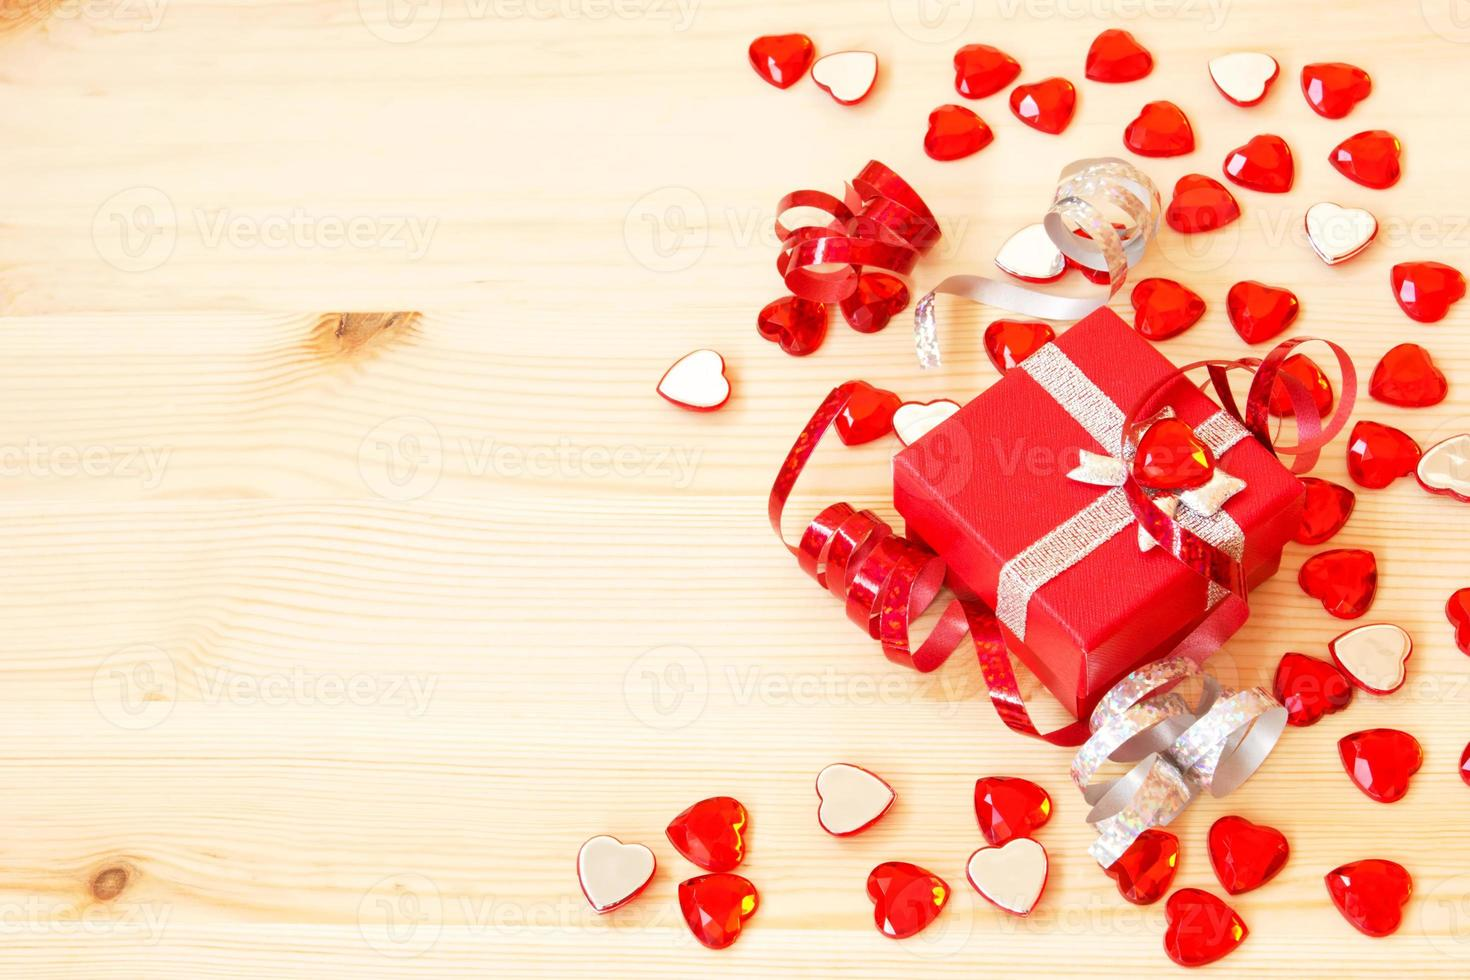 cute red gift box, ribbons and valentine's hearts photo